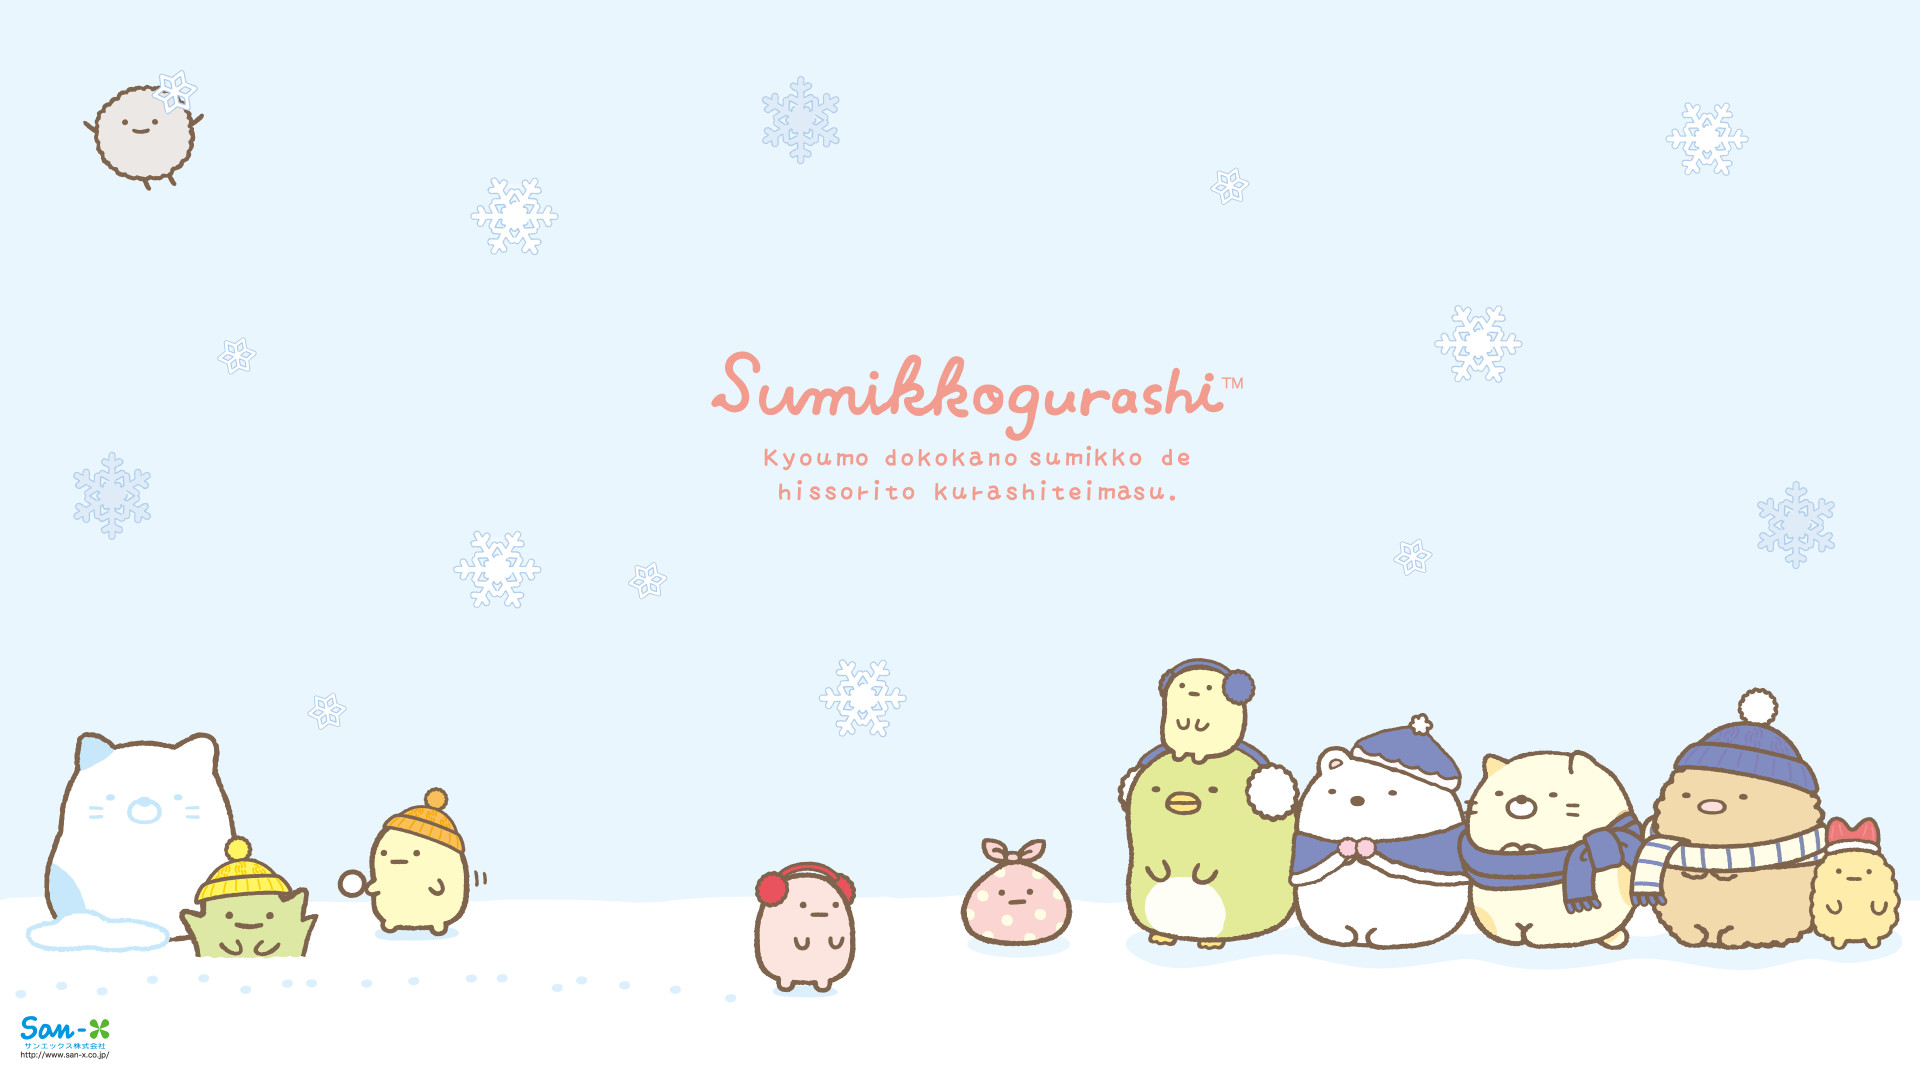 Res: 1920x1080, New Sumikkogurashi Christmas Wallpaper - Living quietly in the corner! Such  a cute bunch in the snow! Sumikkogurashi is so cute and random.